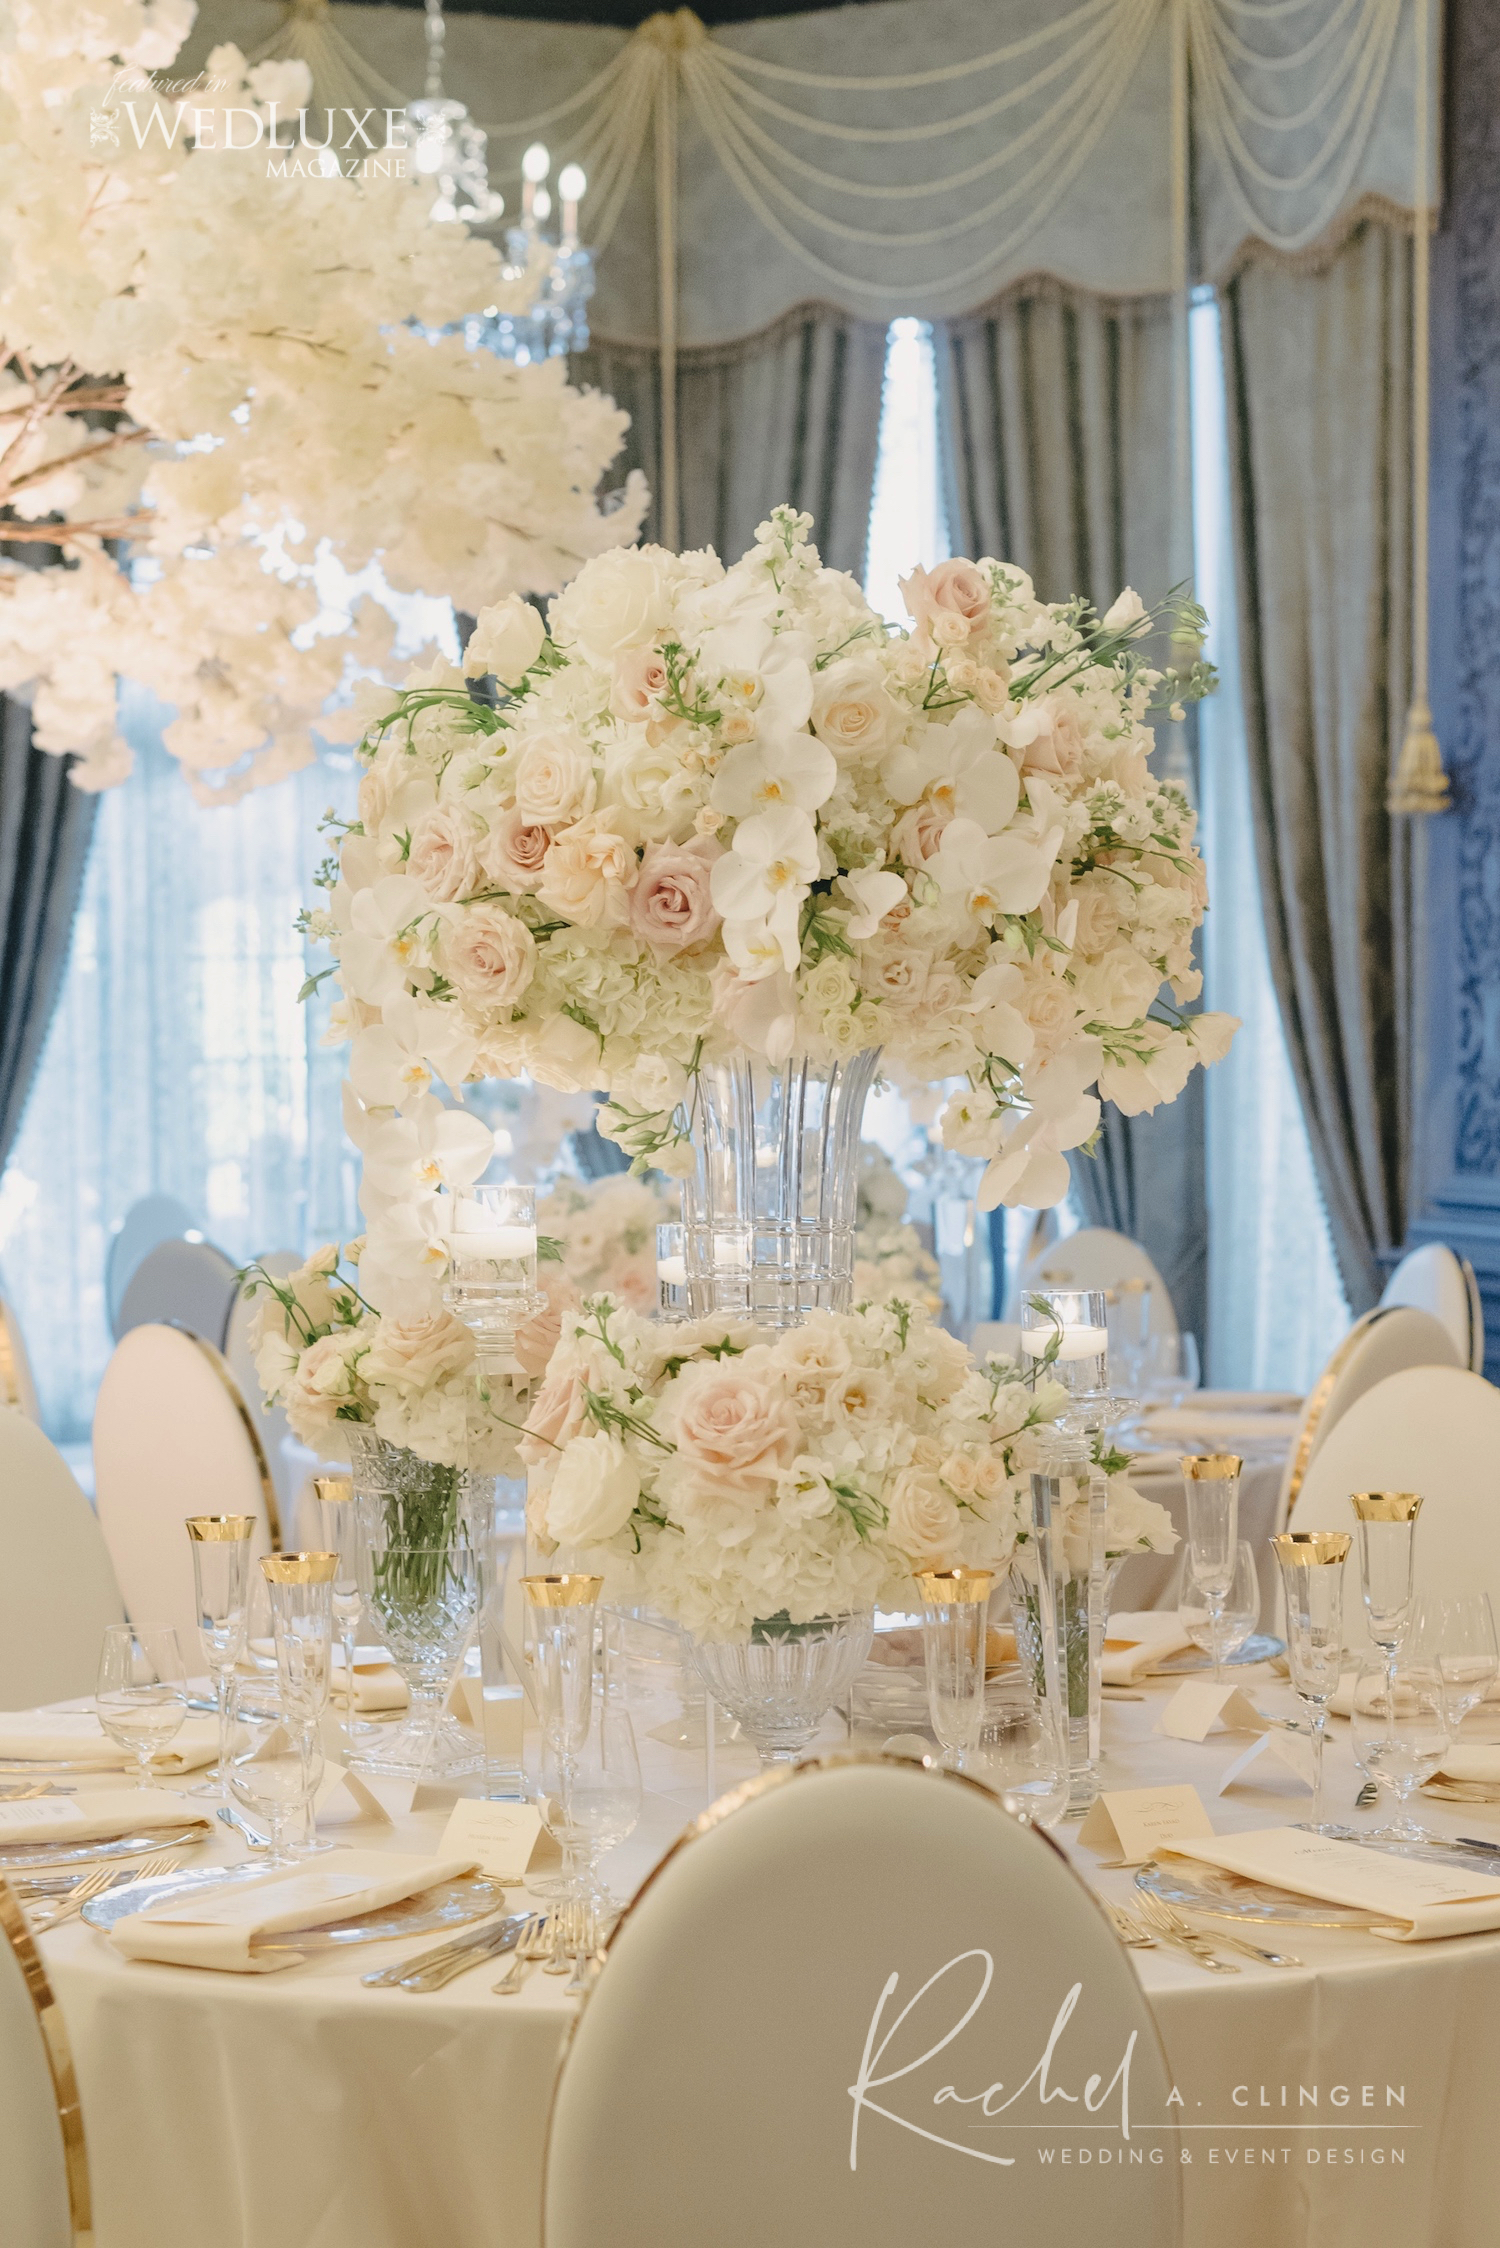 white luxury wedding flowers rachel a clingen